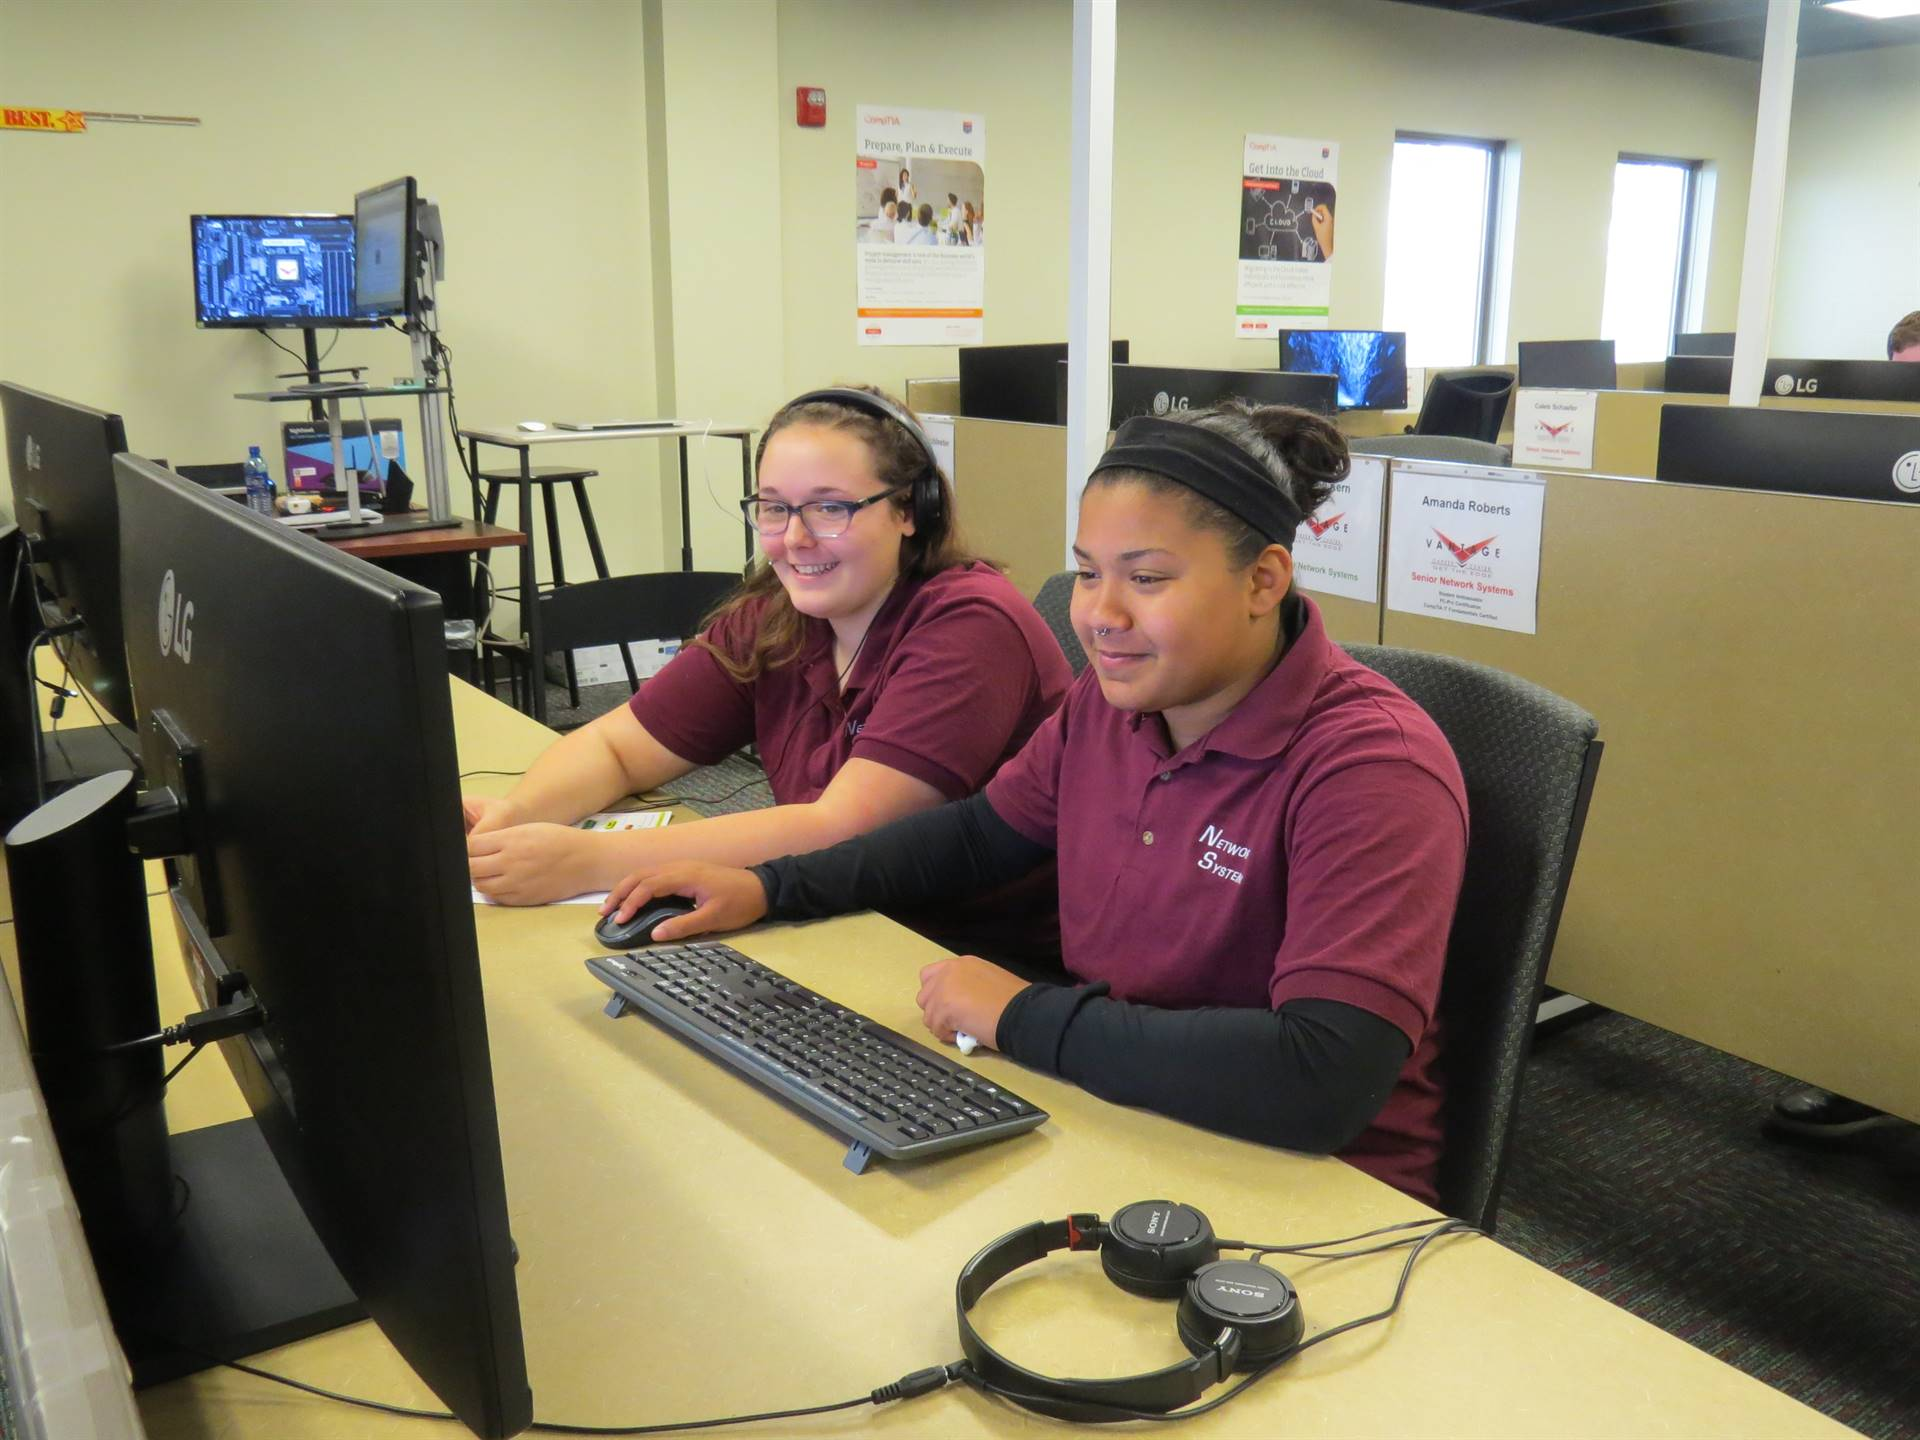 Two female students working on the computer together